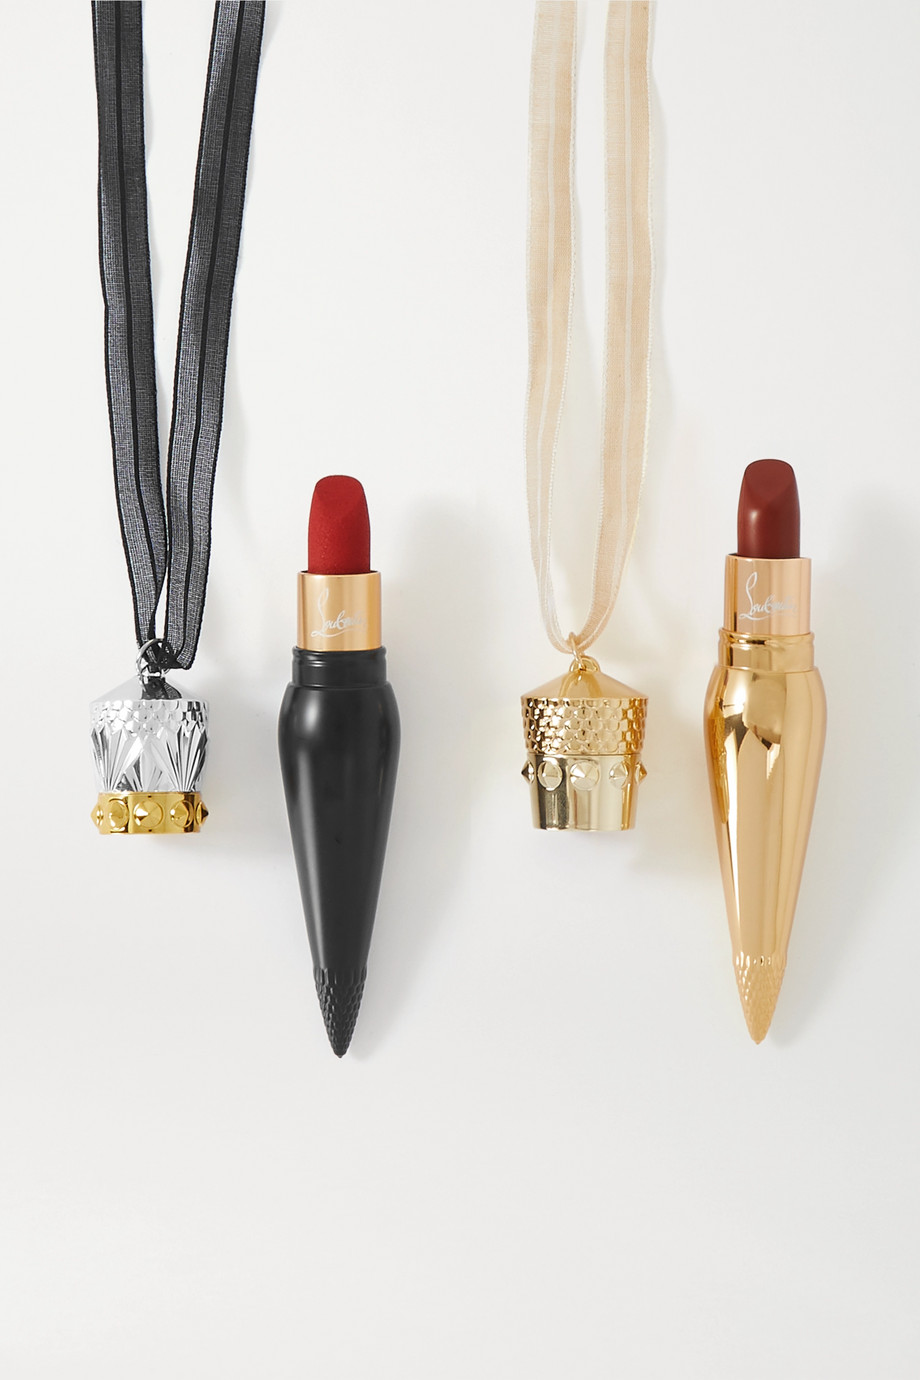 Christian Louboutin Beauty Lip Coffret Duo